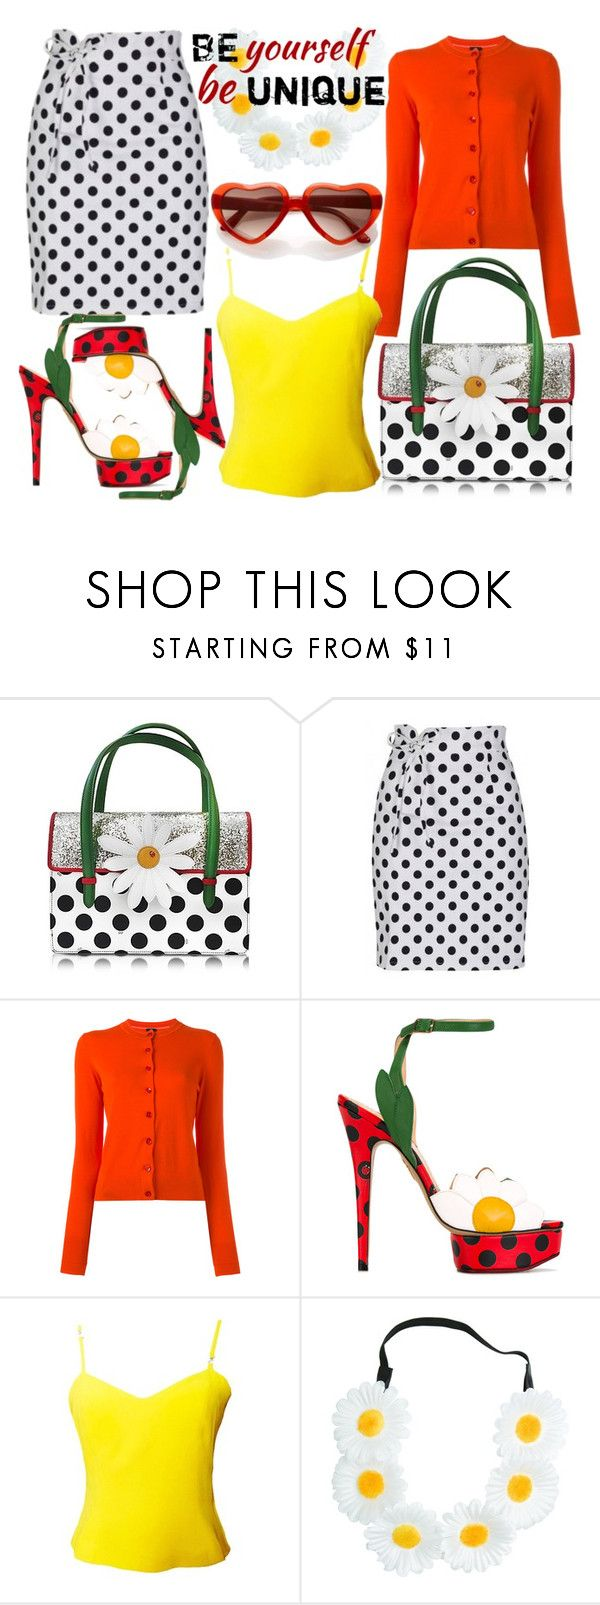 """Be Unique"" by sanya-styleup ❤ liked on Polyvore featuring Charlotte Olympia, PS Paul Smith, Versus, Monsoon, Daisy, polkadot, polkadotskirt, yellowtop and redcardigan"